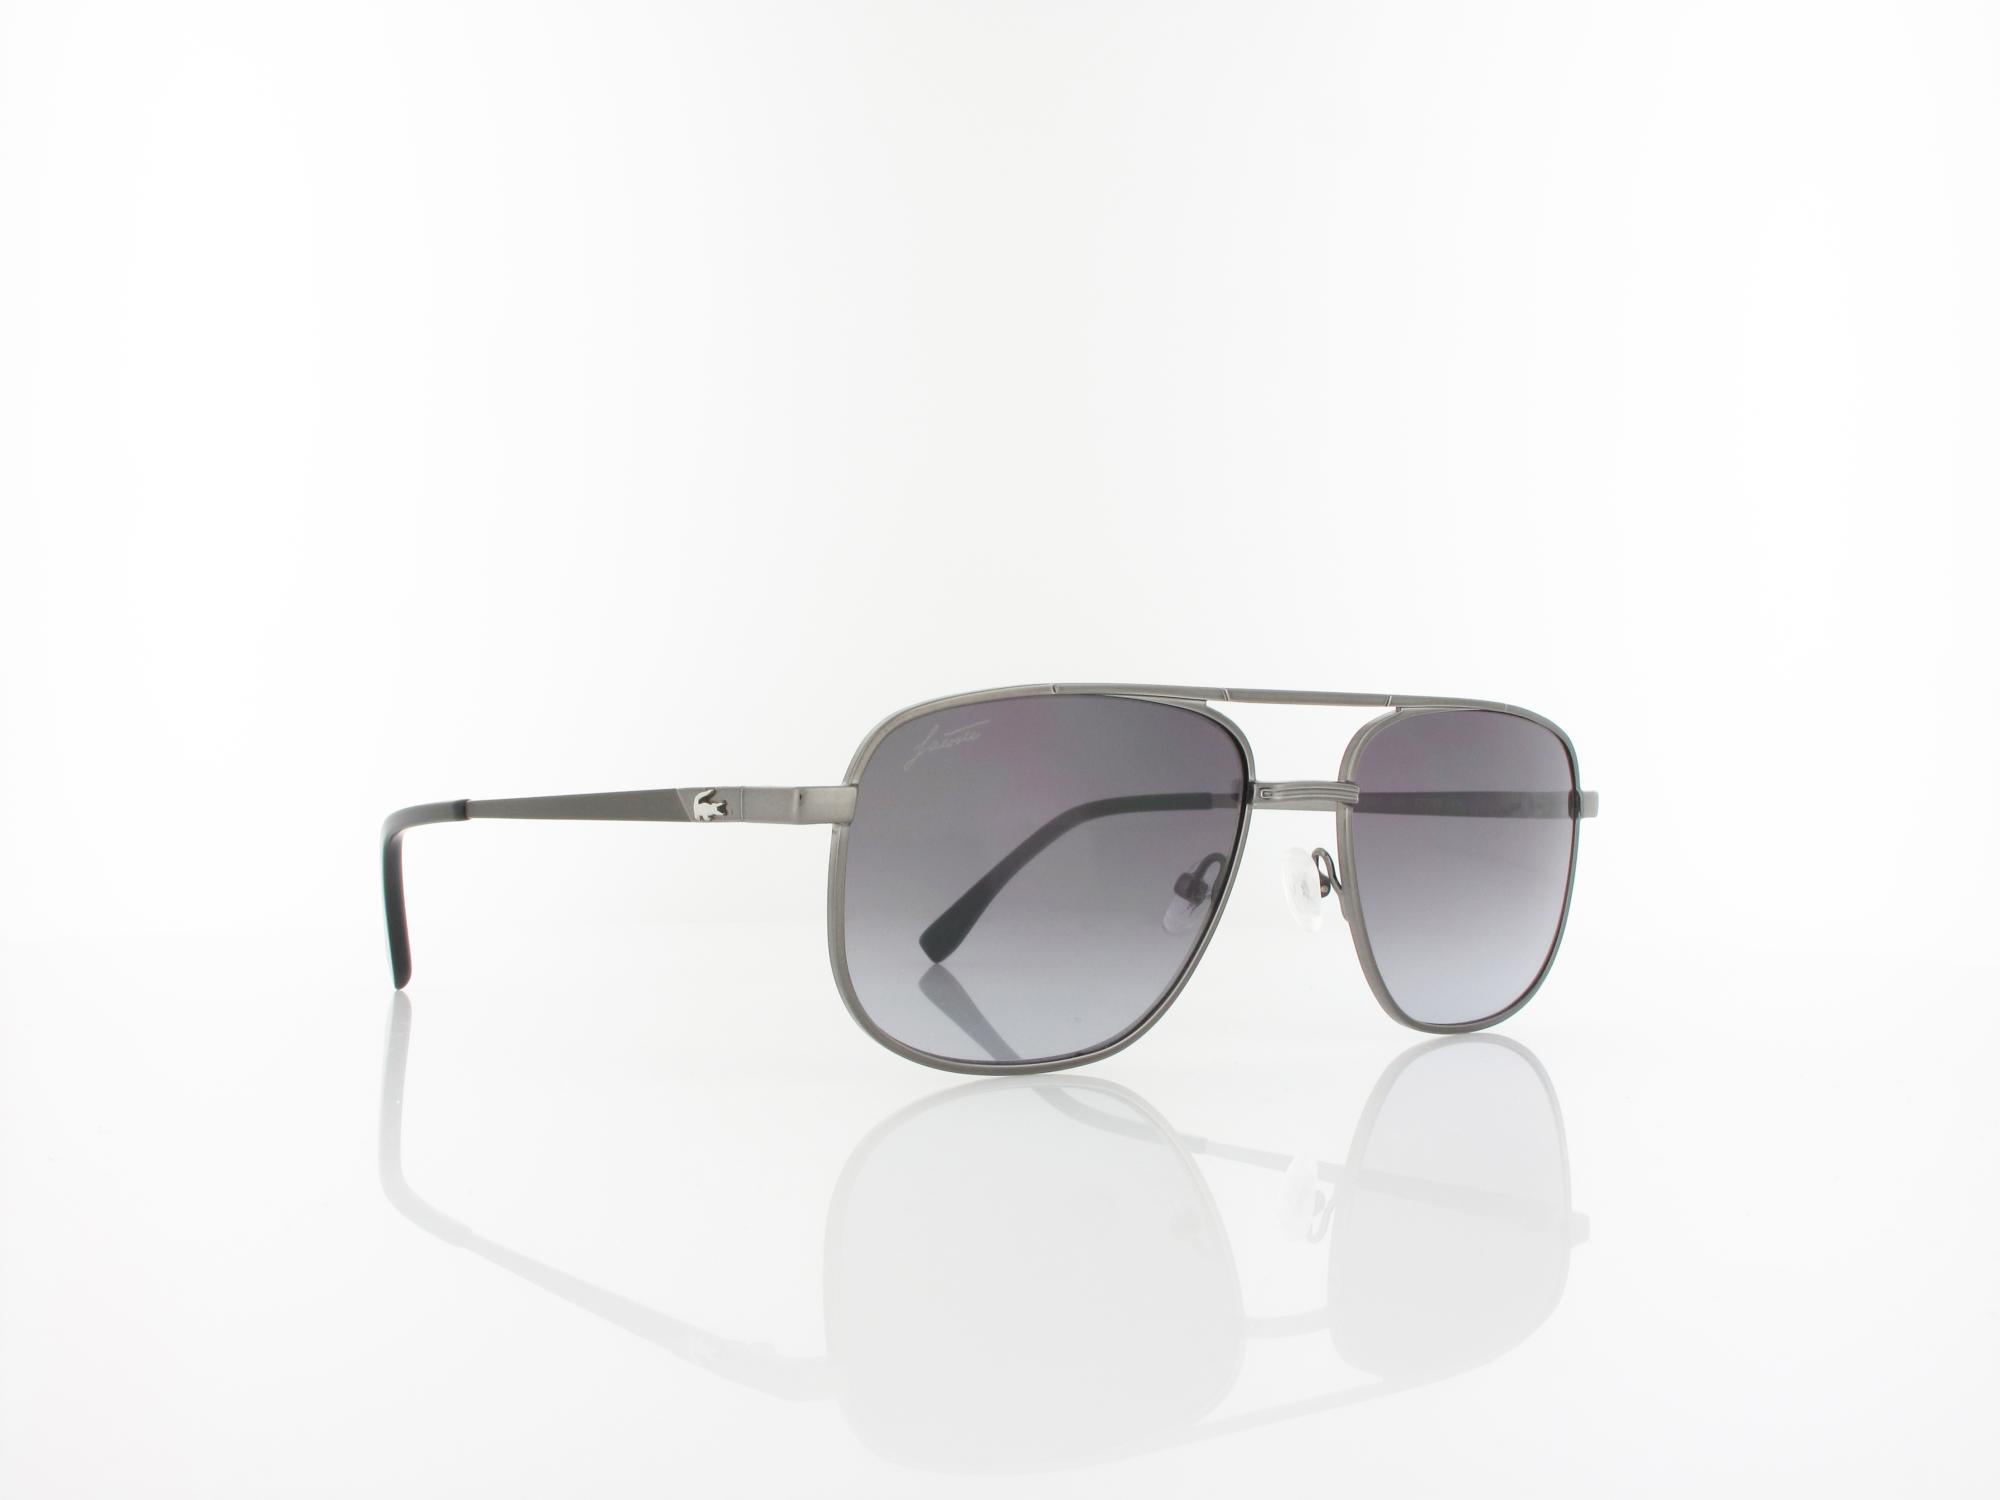 Lacoste | L231S 024 57 | dark grey / grey gradient